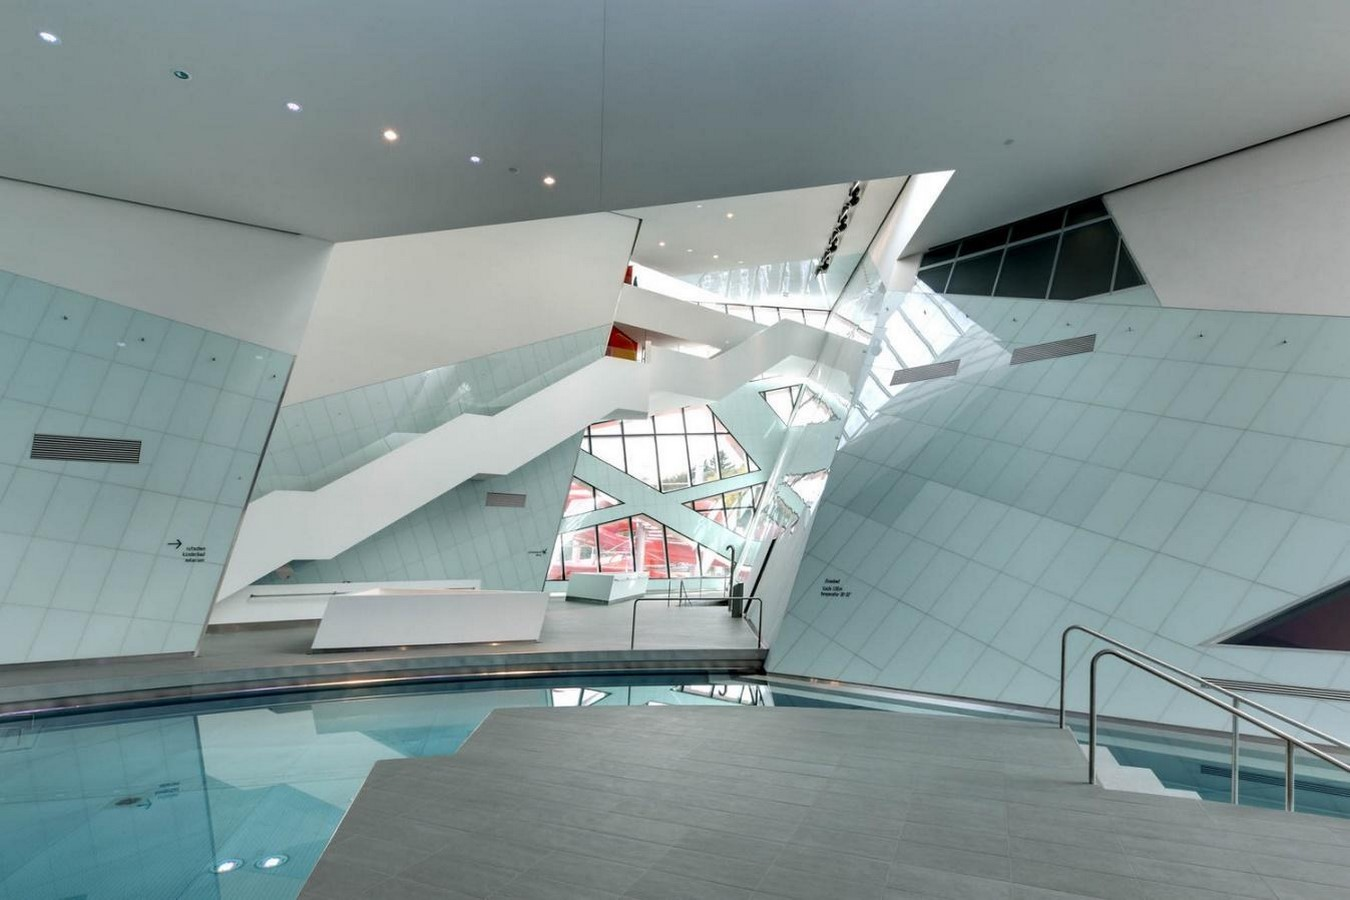 Westside Shopping and Leisure Centre by Daniel Libeskind: Unification of commerce, culture and leisure - Sheet6